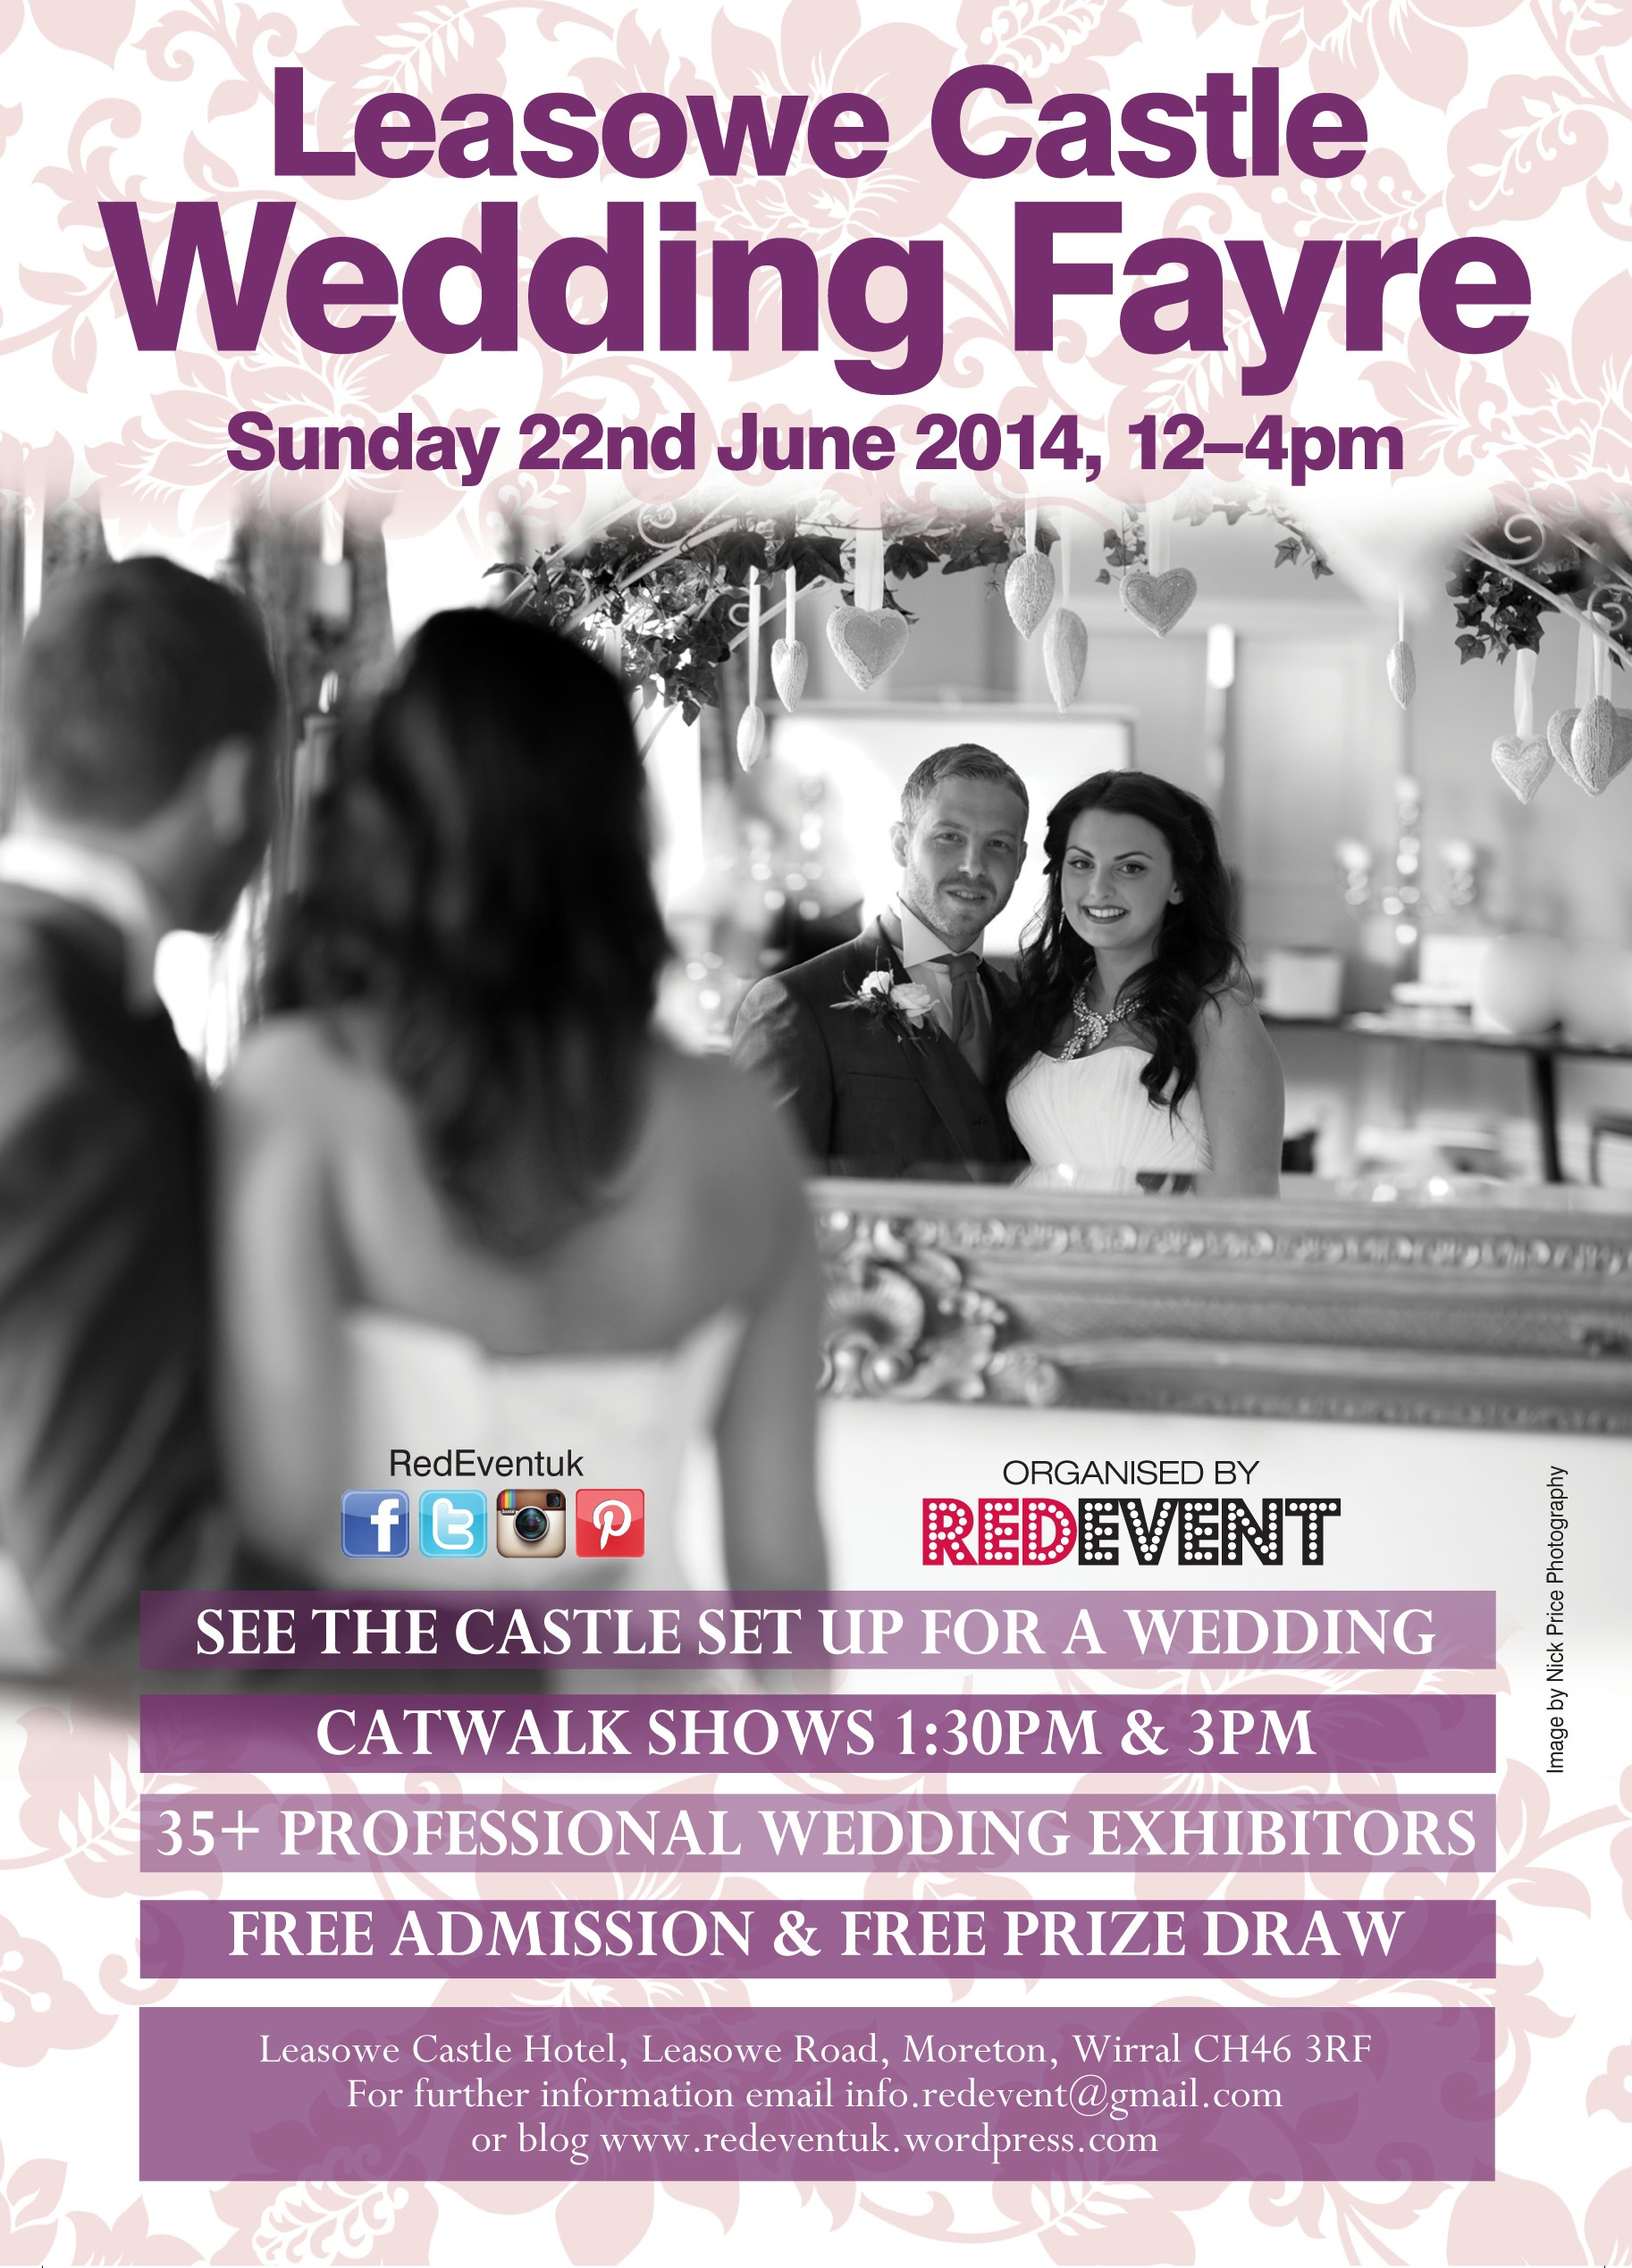 Leasowe Castle Wedding Fayre Sunday 22nd June 2014